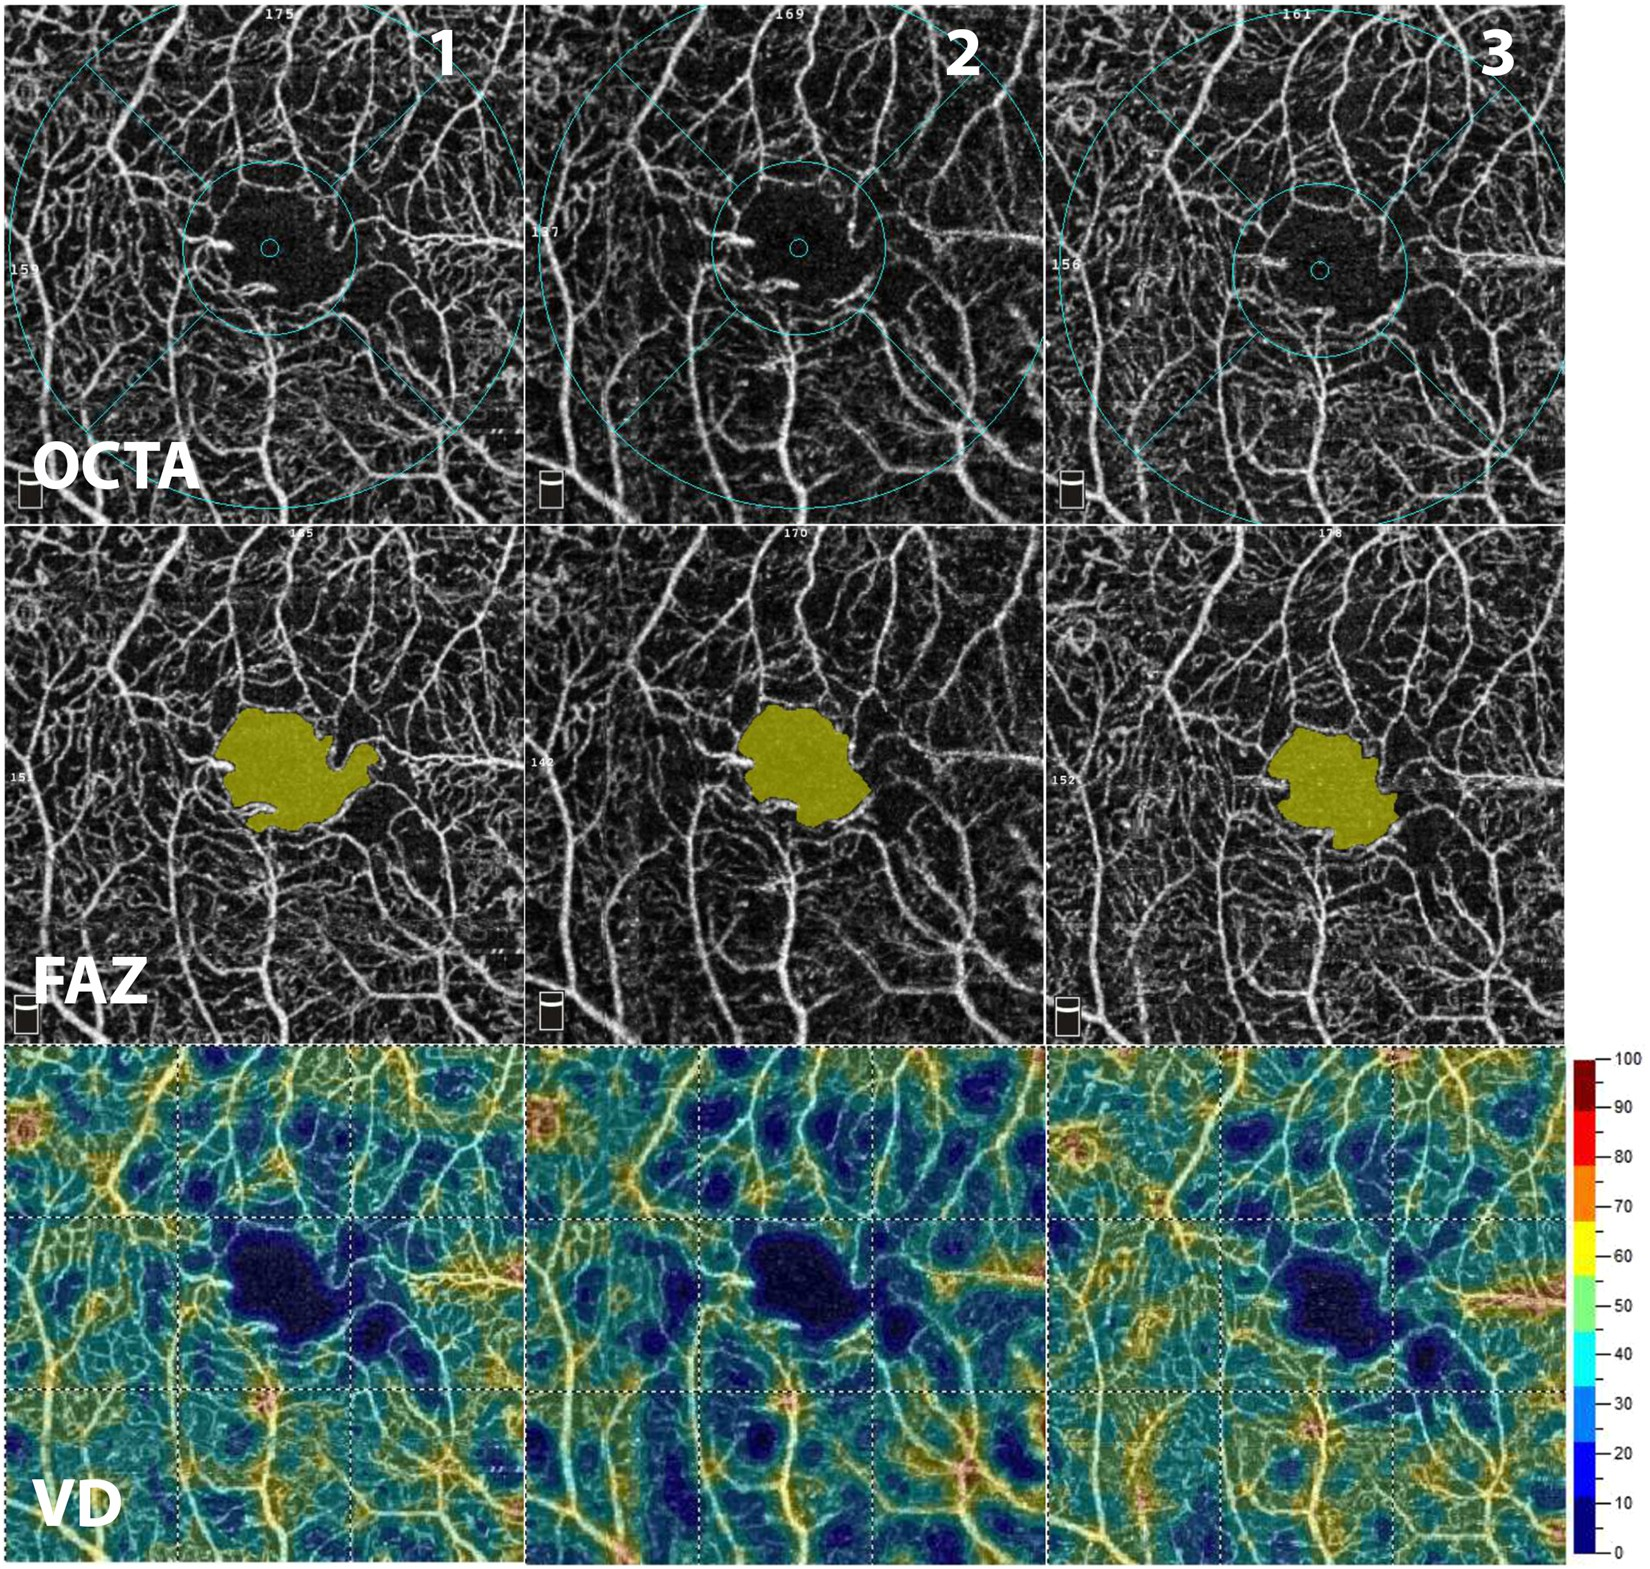 Intrasession And Between Visit Variability Of Retinal Vessel Density